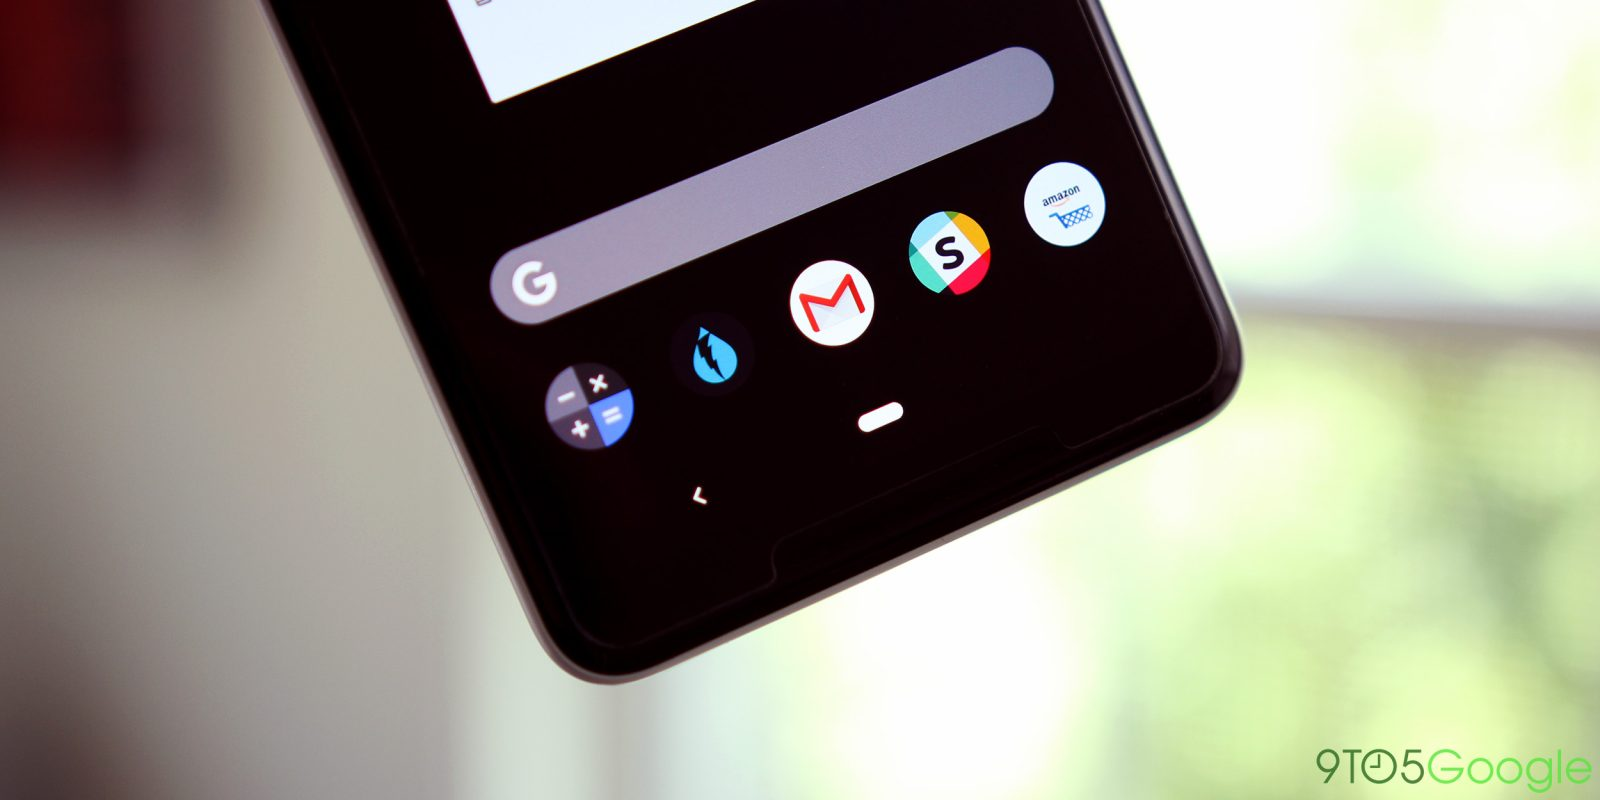 How to use Android 9 Pie's gesture navigation - 9to5Google